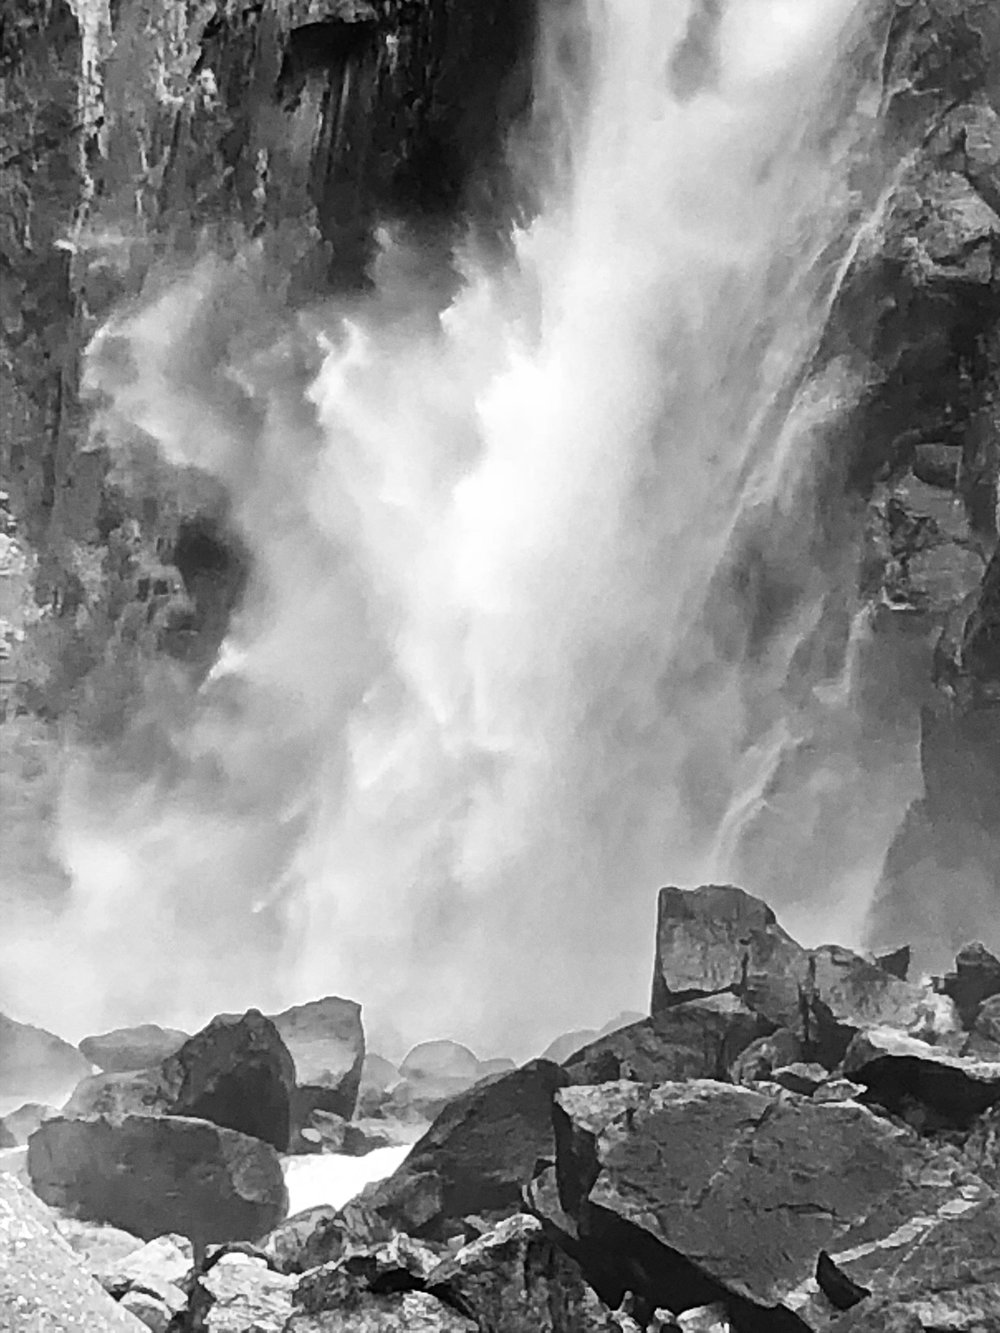 Bottom of Yosemite Falls - Yosemite